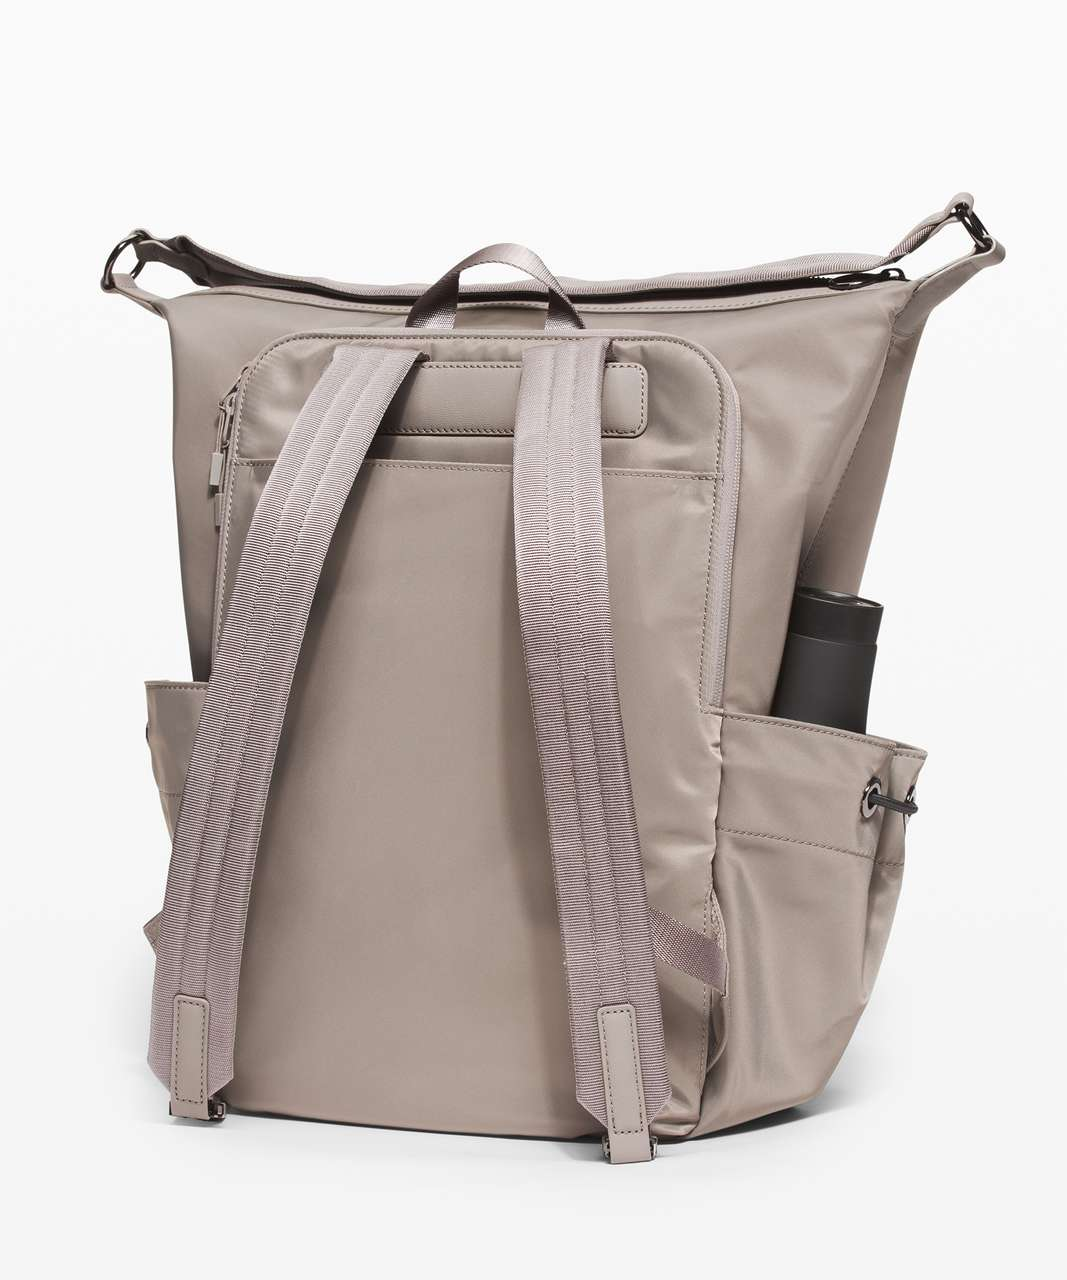 Lululemon Easy Days Backpack 20L - Carbon Dust